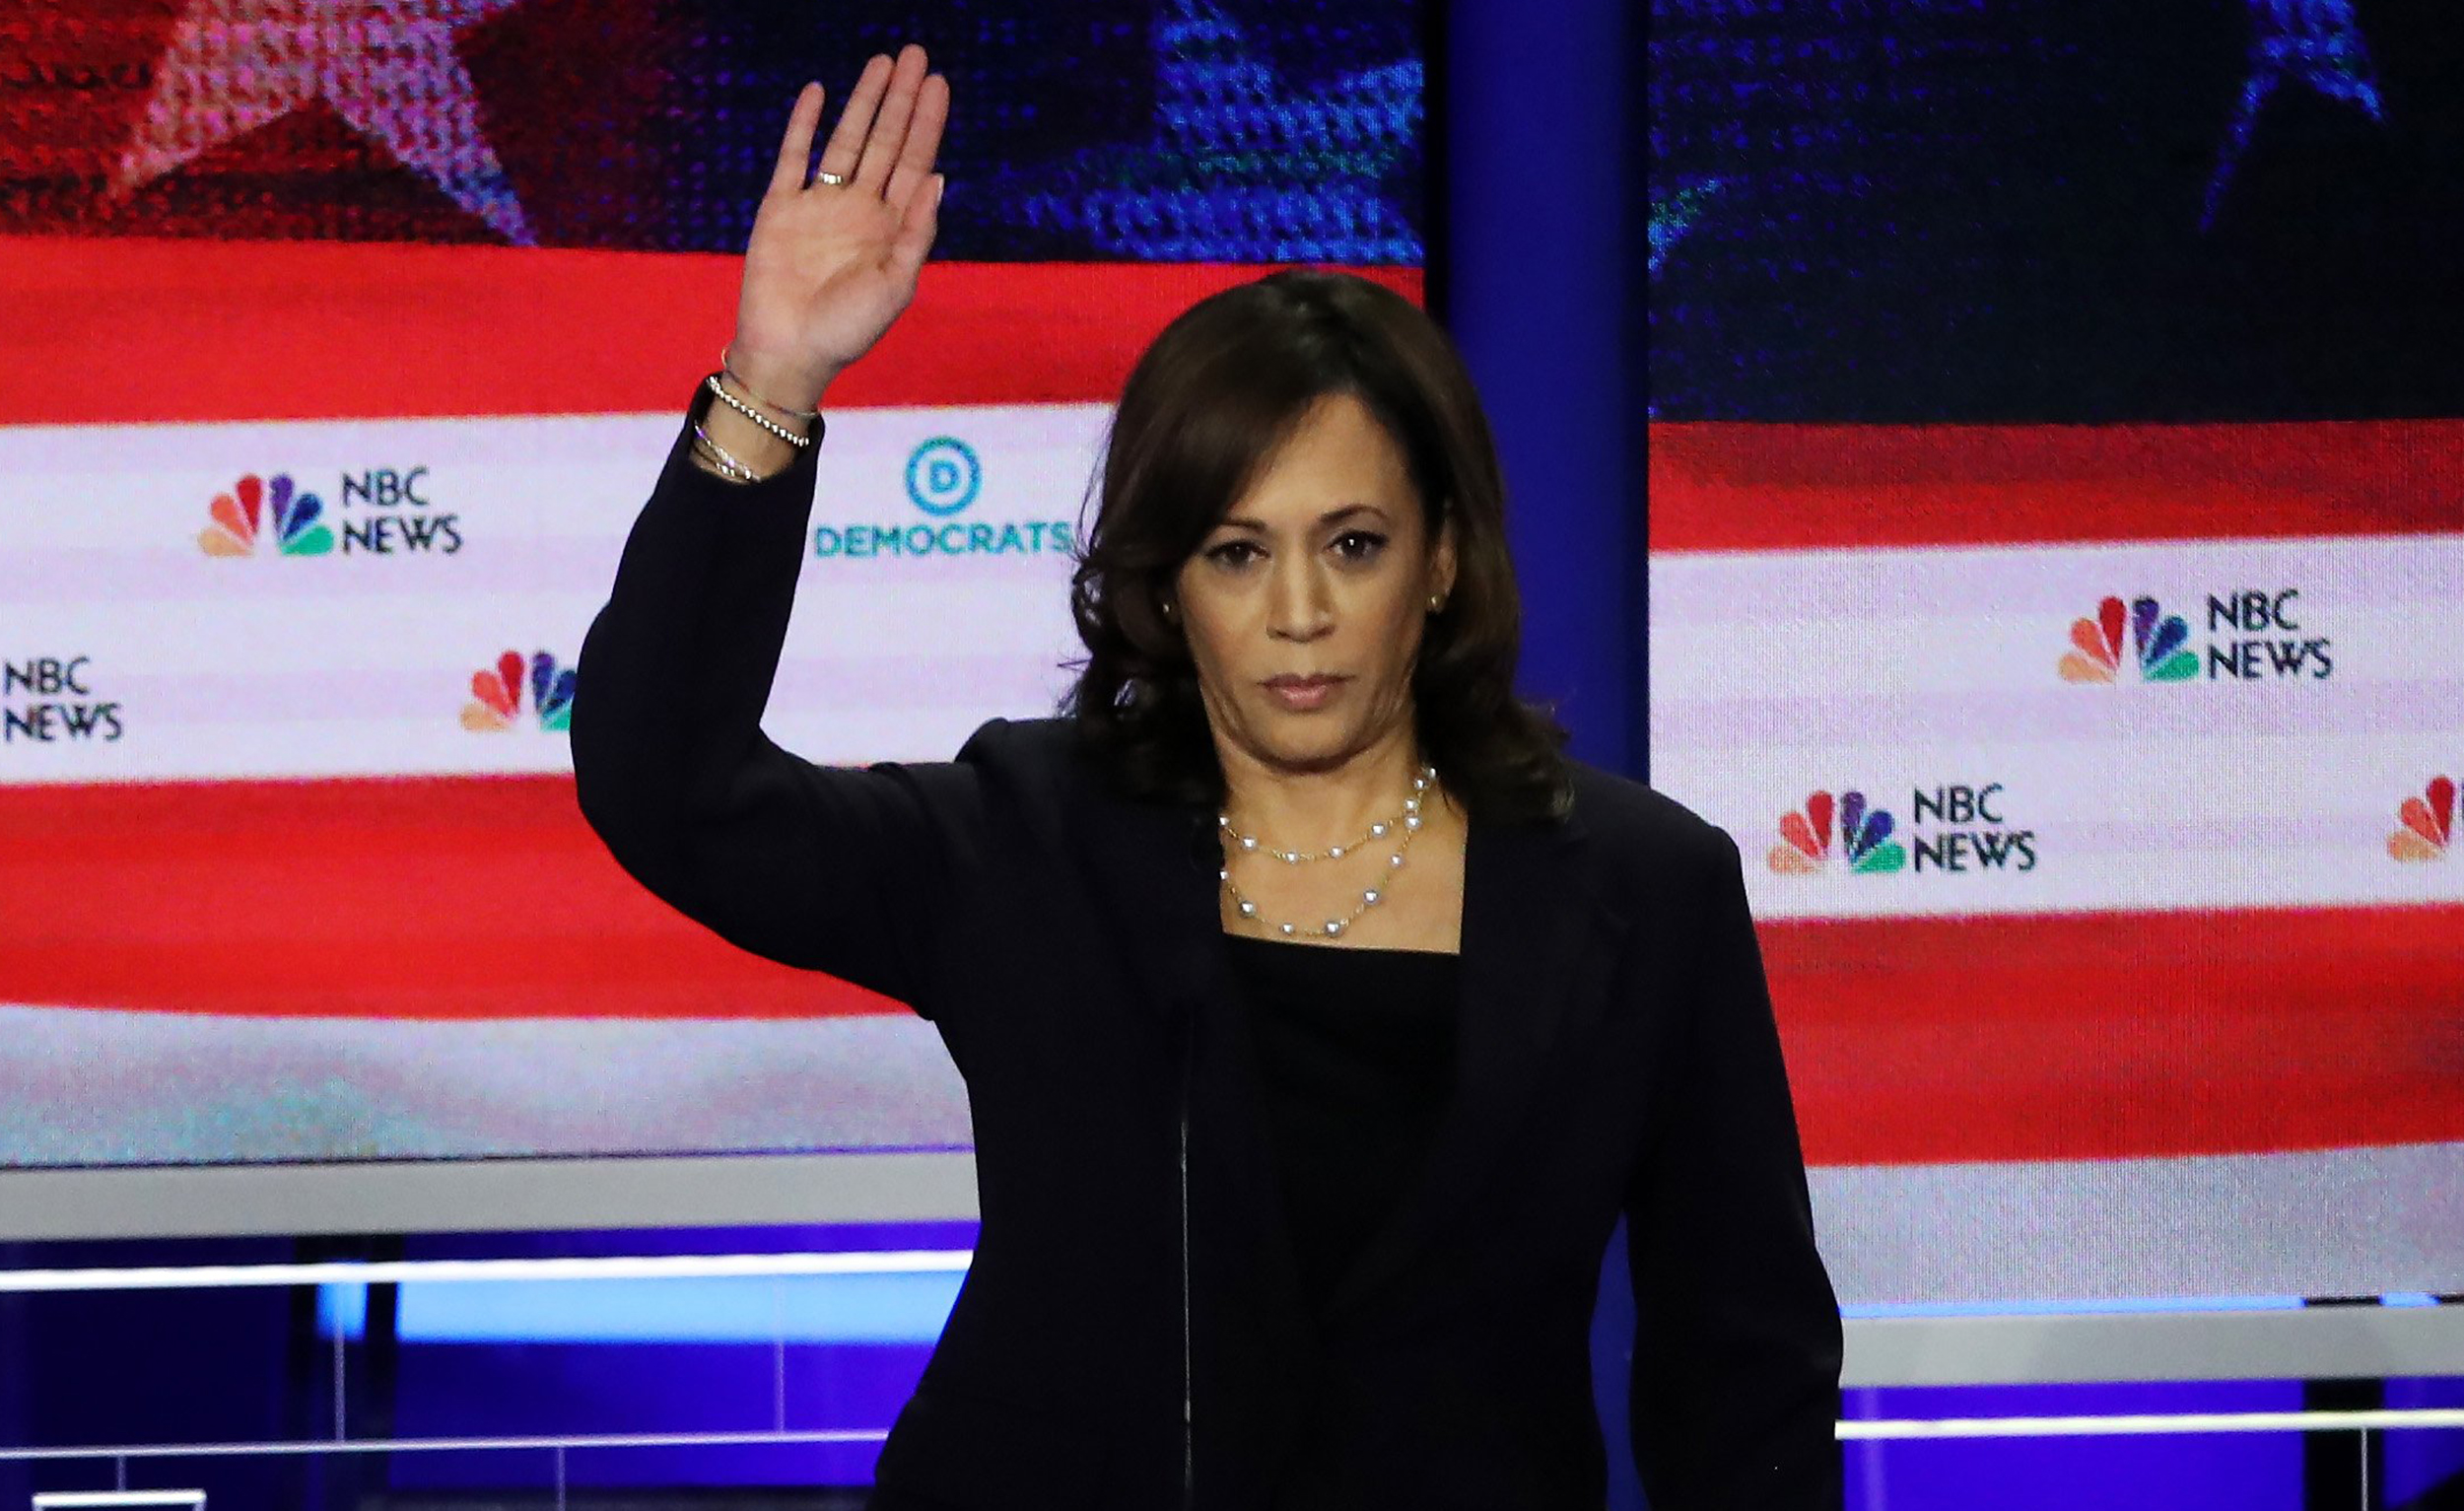 Kamala Harris Walks Back Her Hand Up Moment On Health Insurance In Democratic Debate